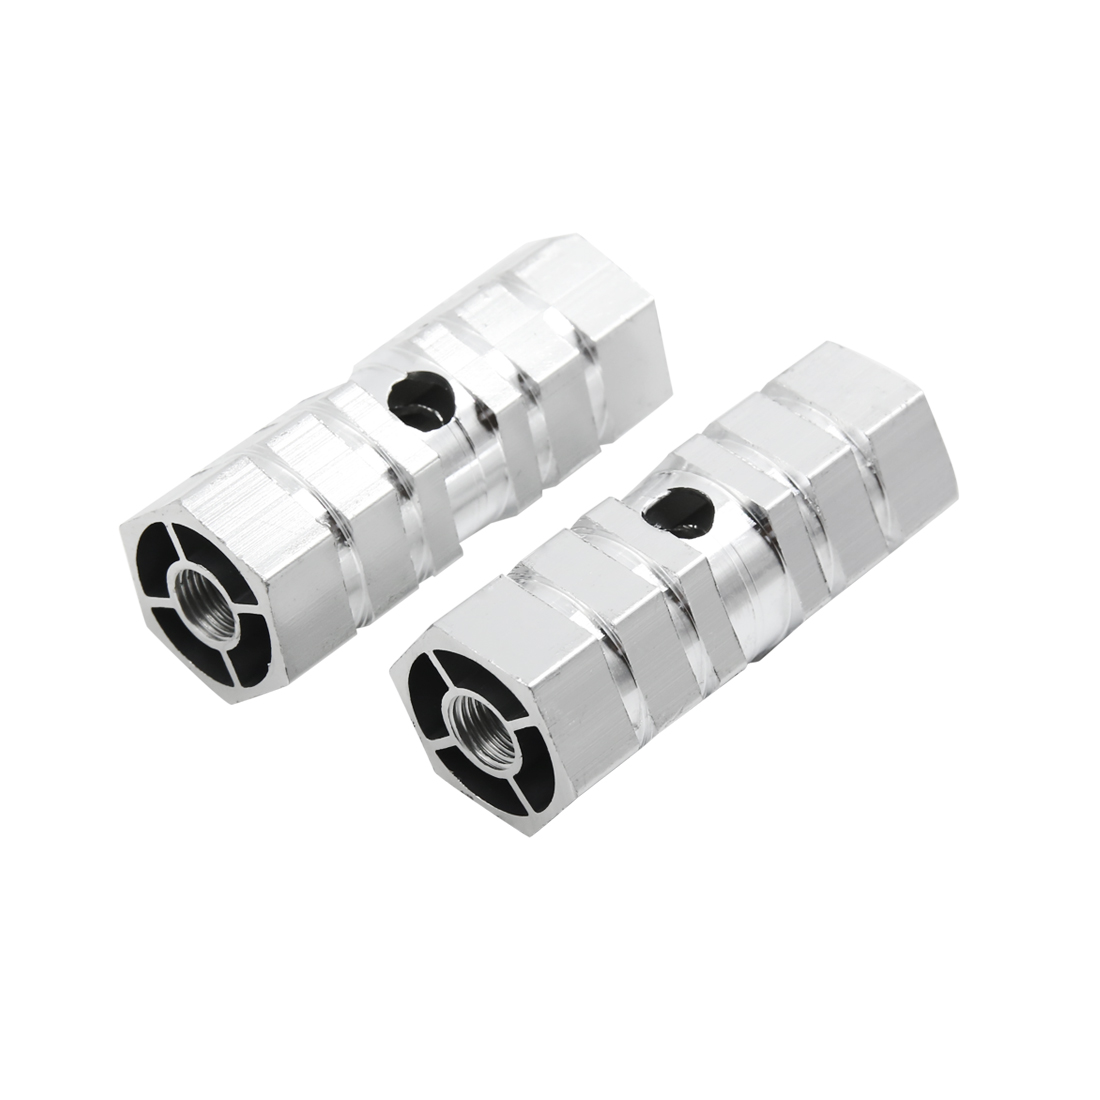 Silver Tone Aluminum Antislip Cylinder Solid Bicycle Foot Pegs 2 Pcs